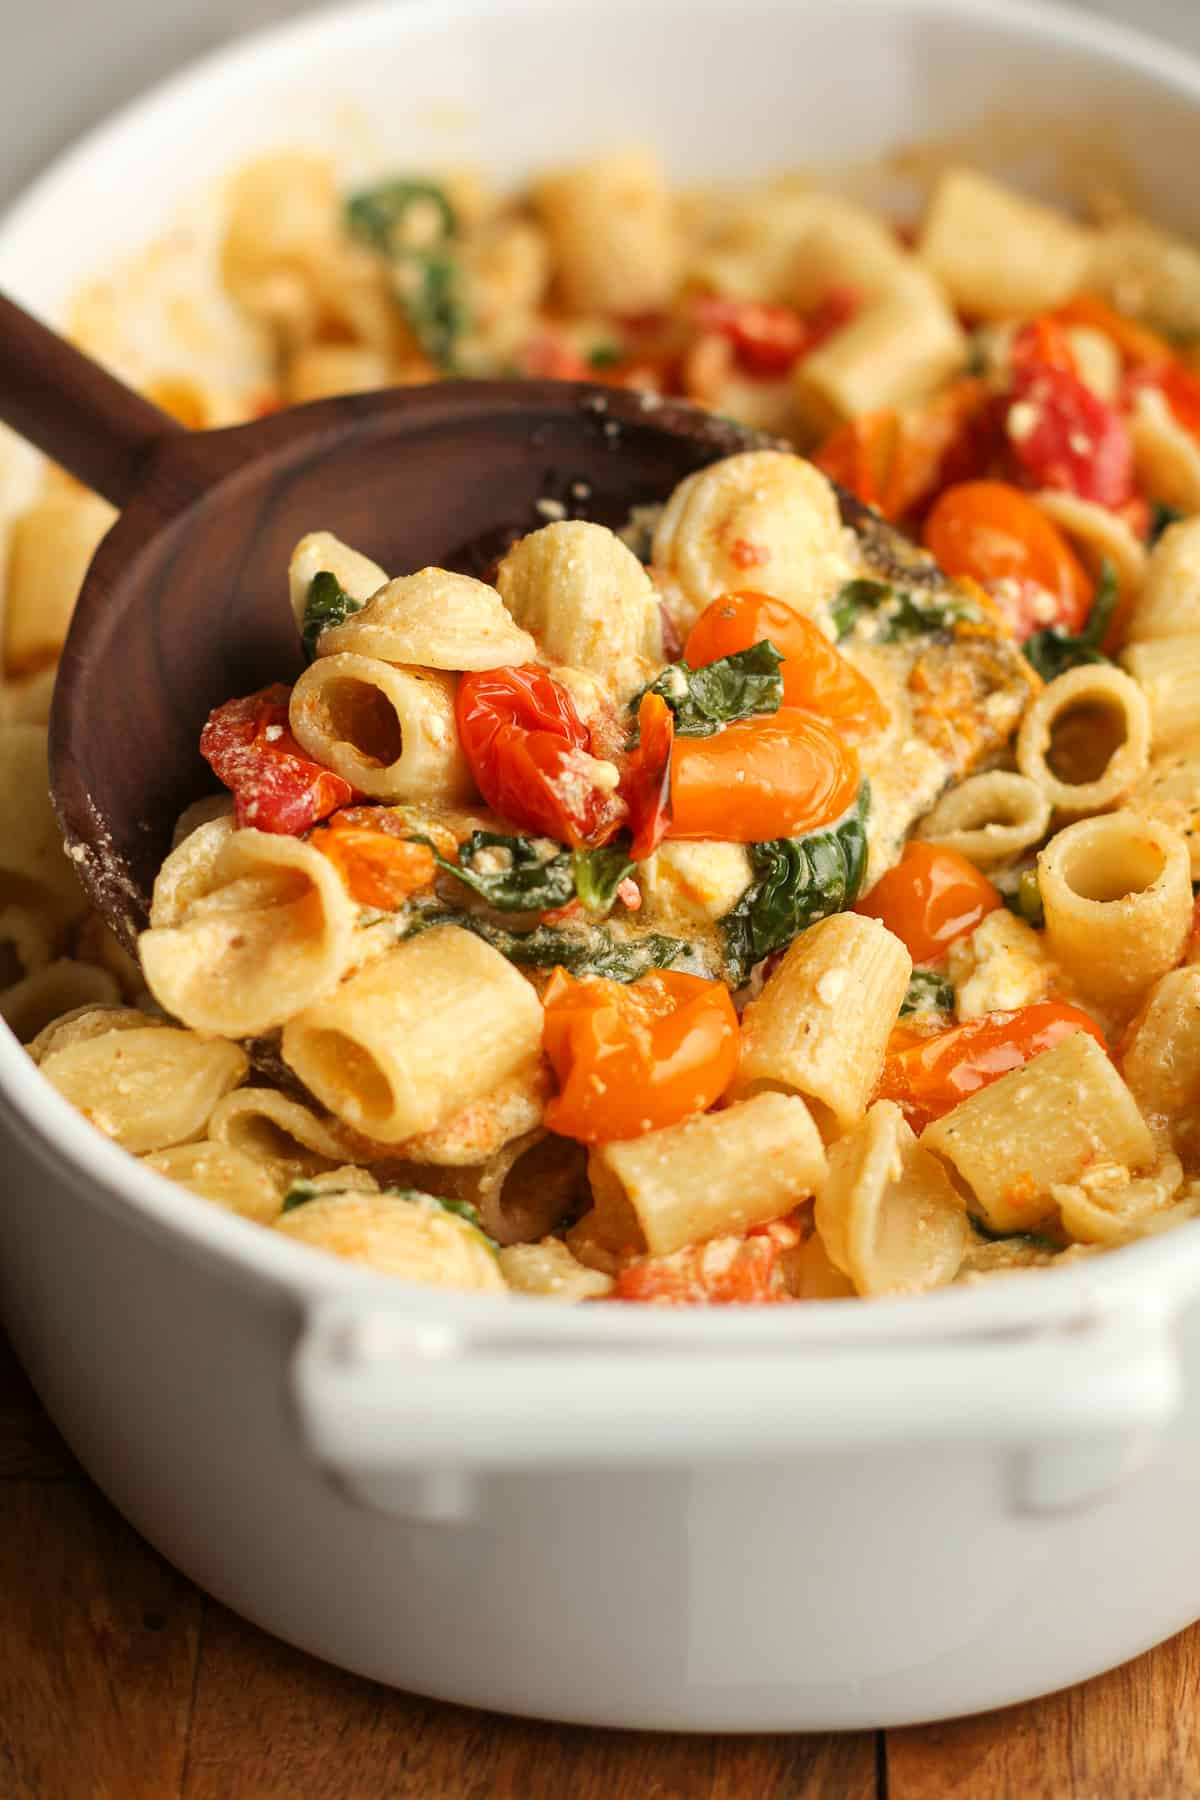 Baked Feta Pasta with Spinach